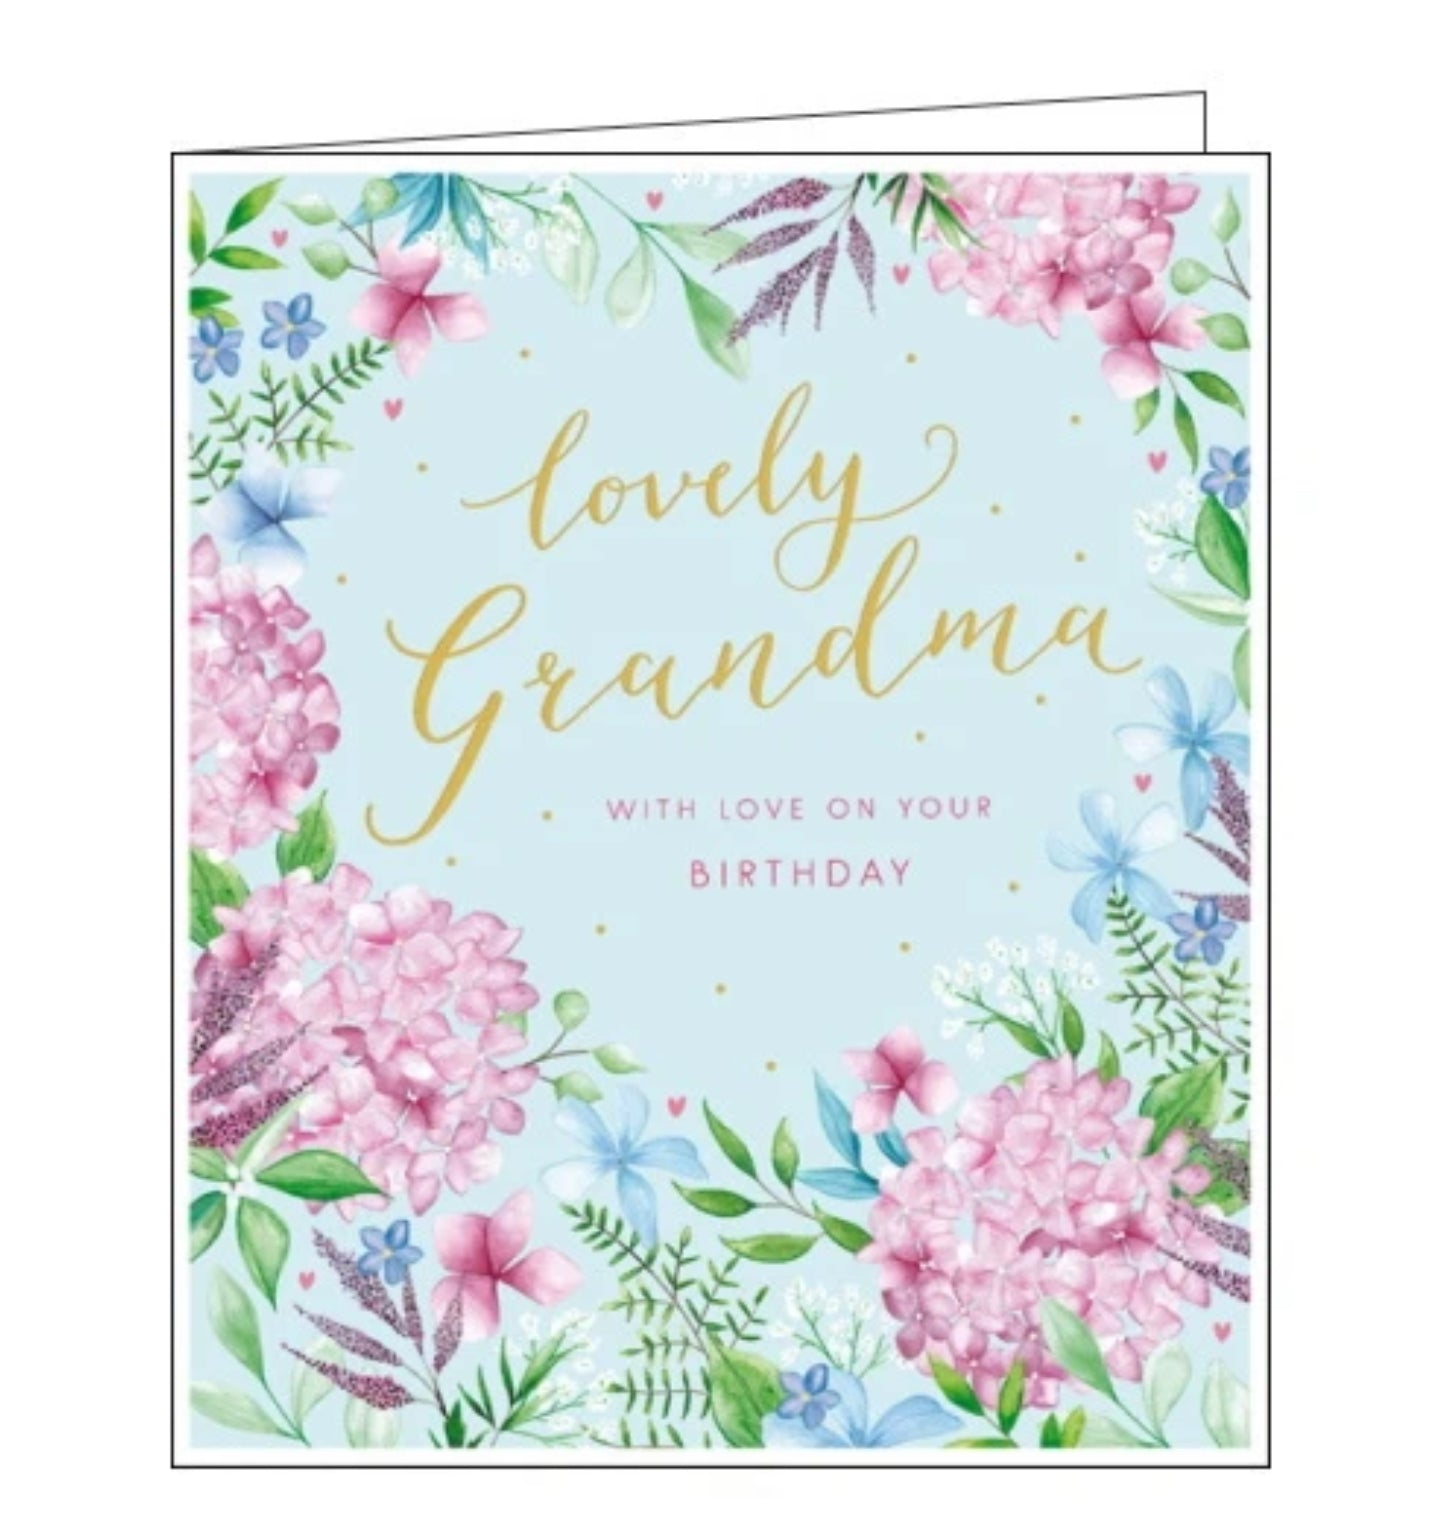 Lovely Grandma with love on your birthday